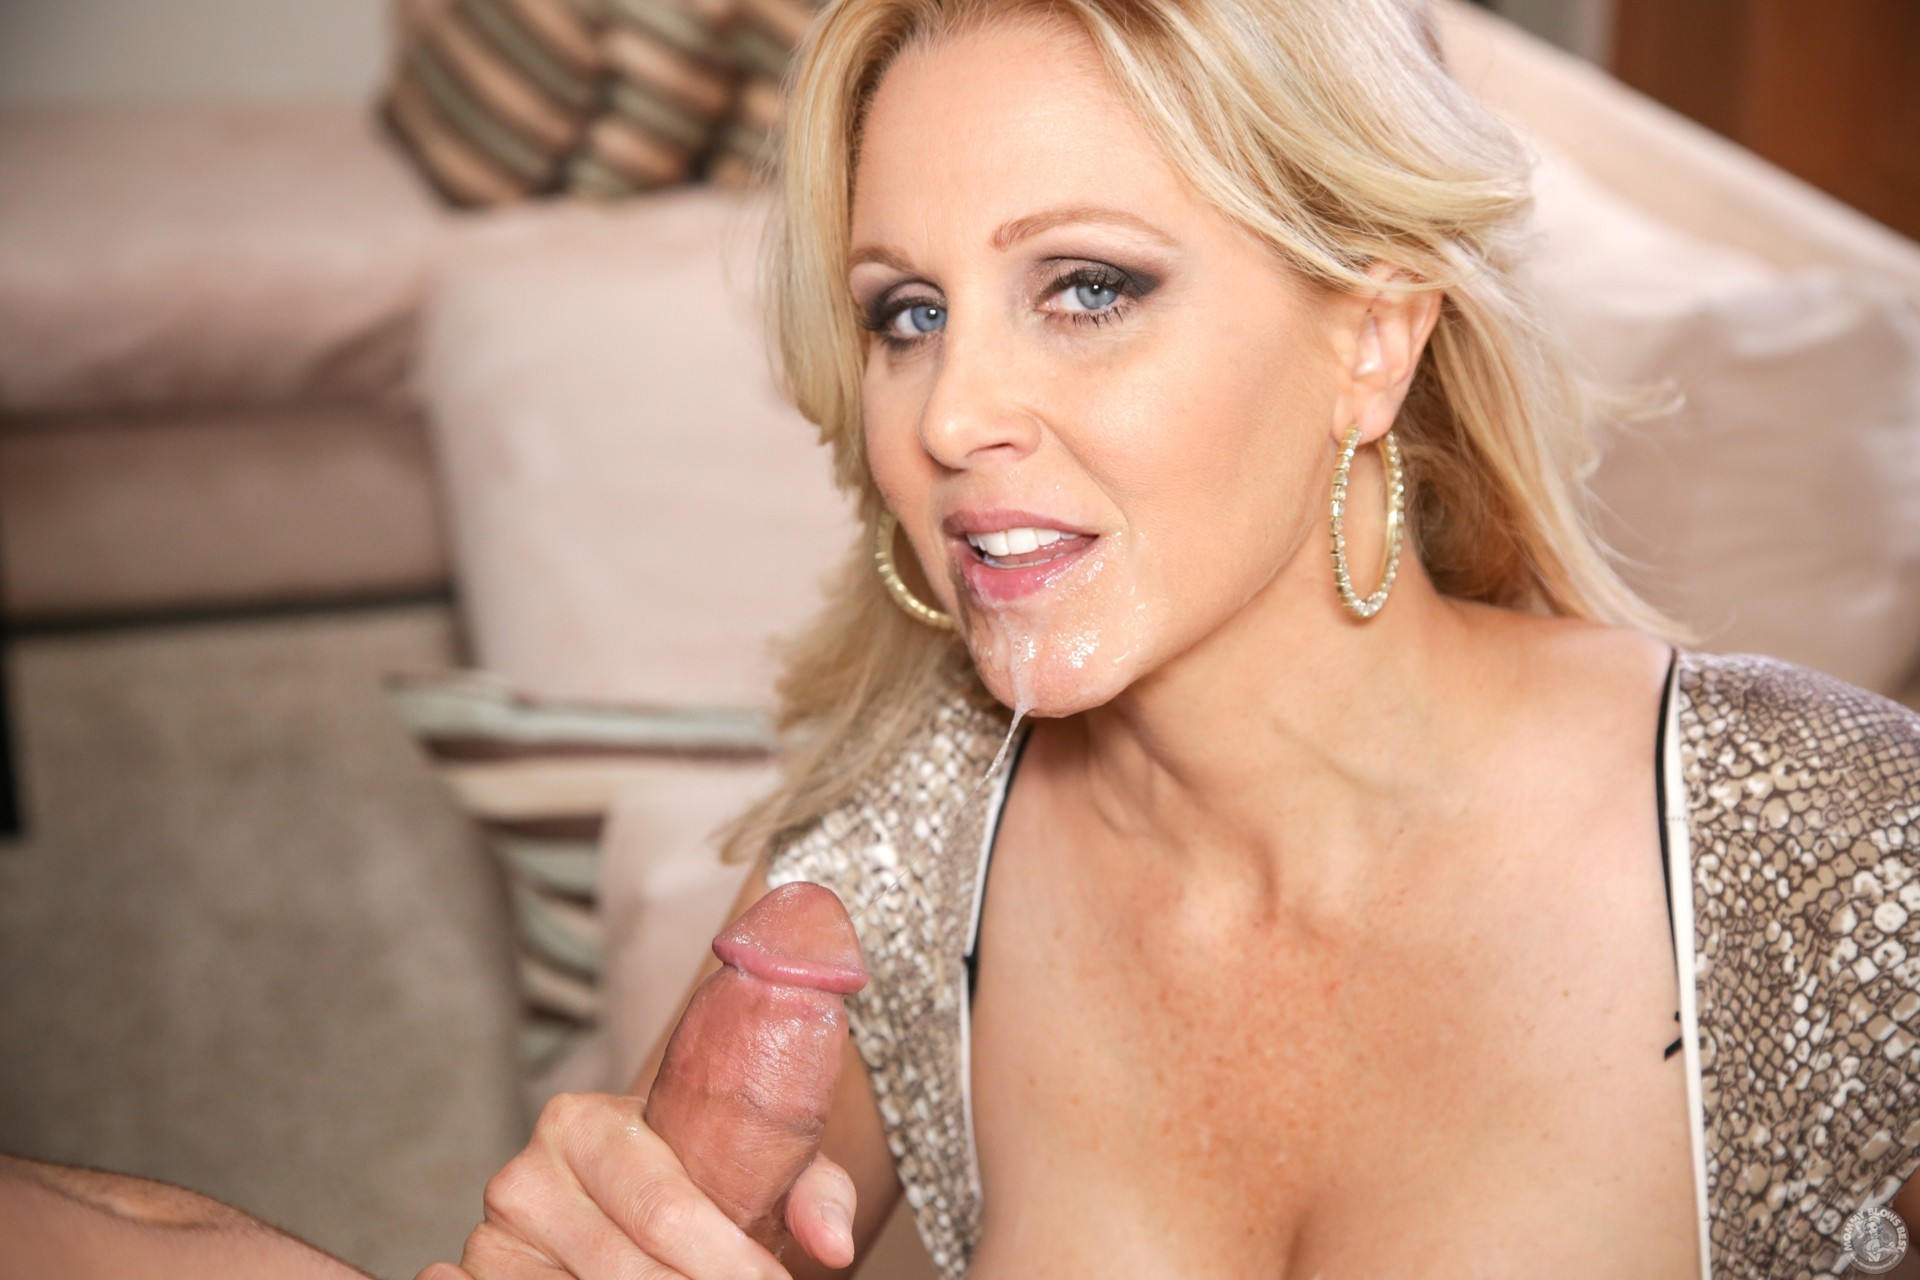 Video juliaann deepthroat